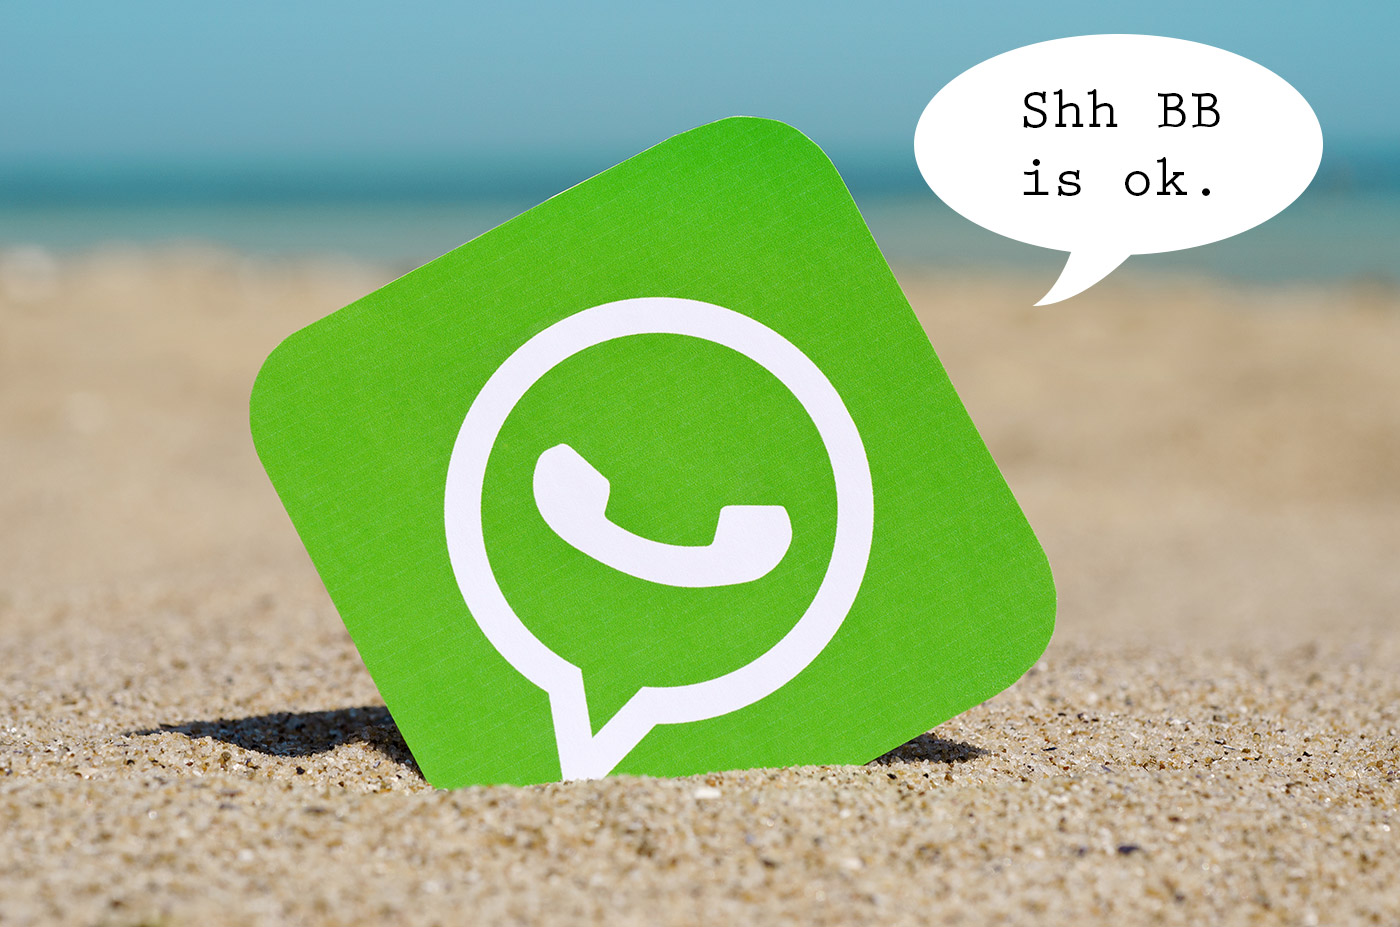 WhatsApp is dropping support for the BlackBerry platform